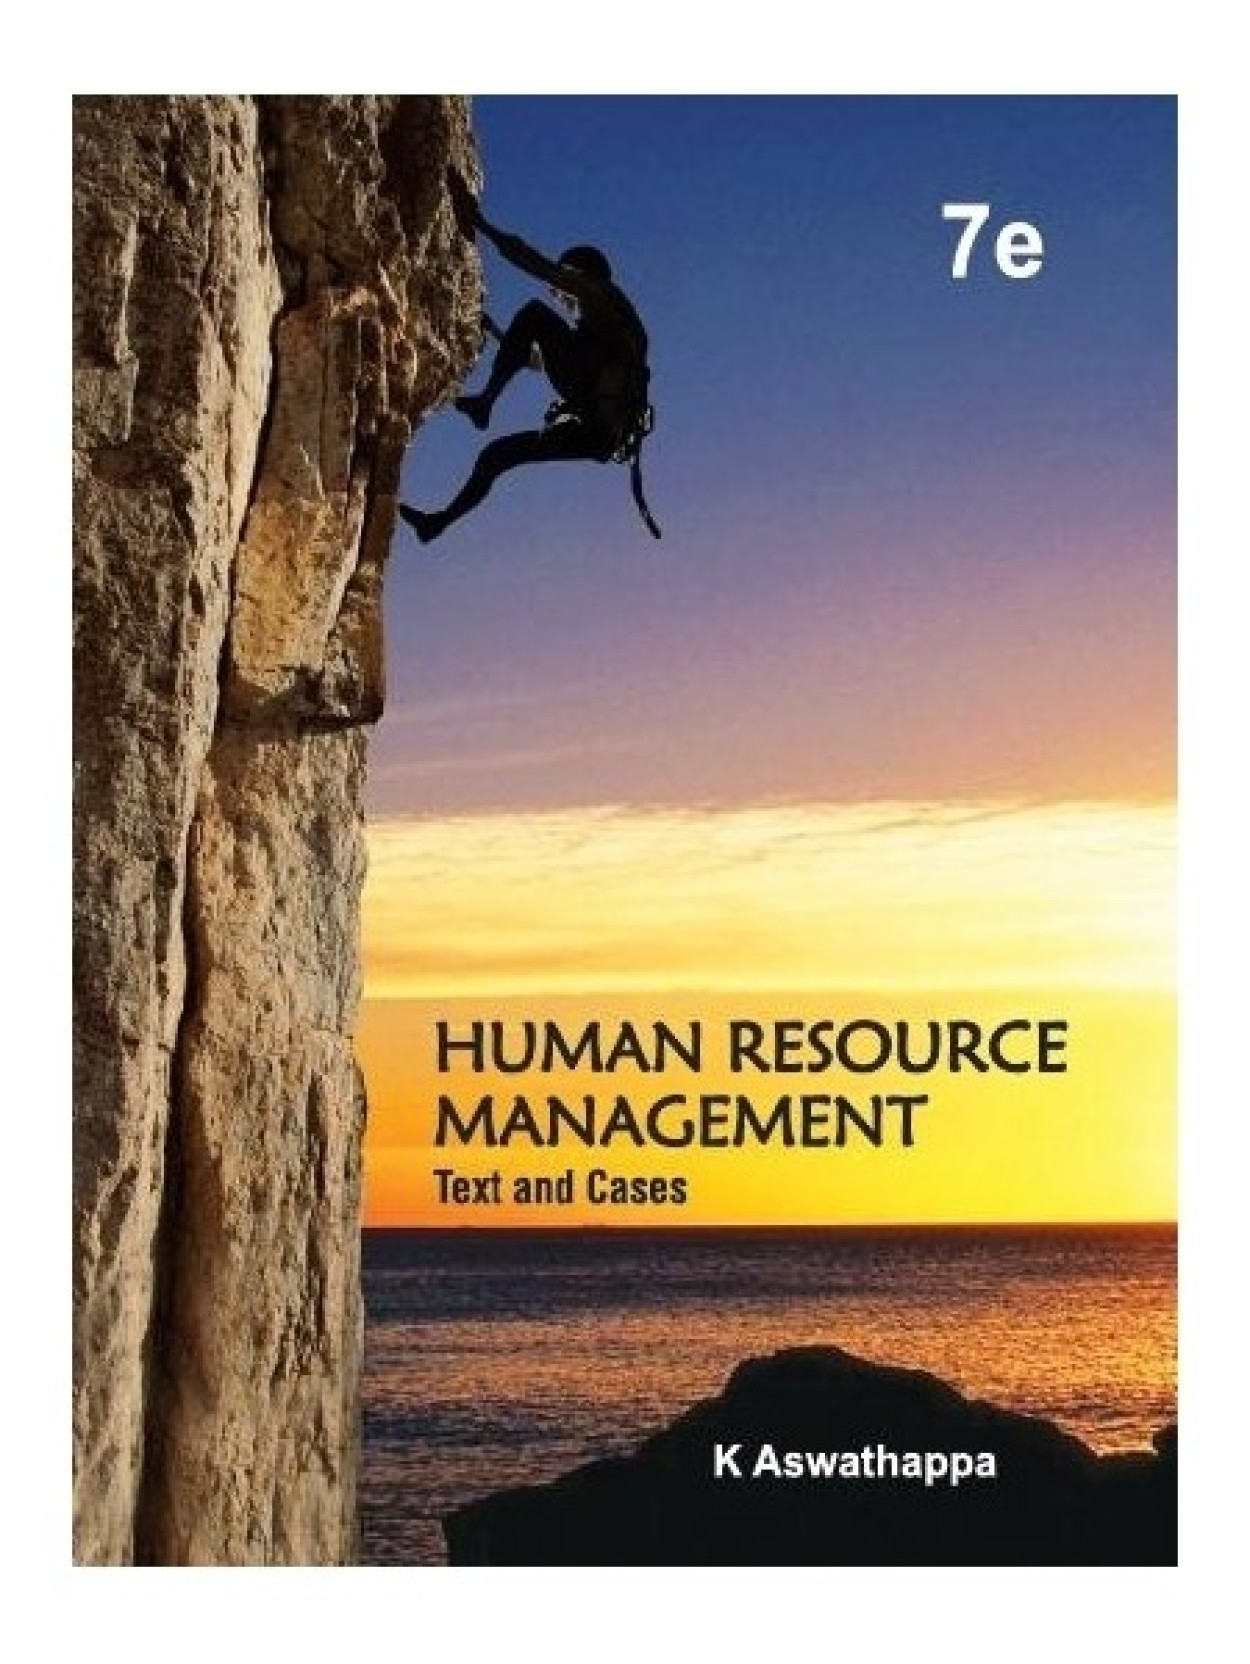 human resource management case Human resource management case -1 siemens builds strategy –oriented hr system siemens is a 150-year-old german company, but it's not the company it was even a few years ago.